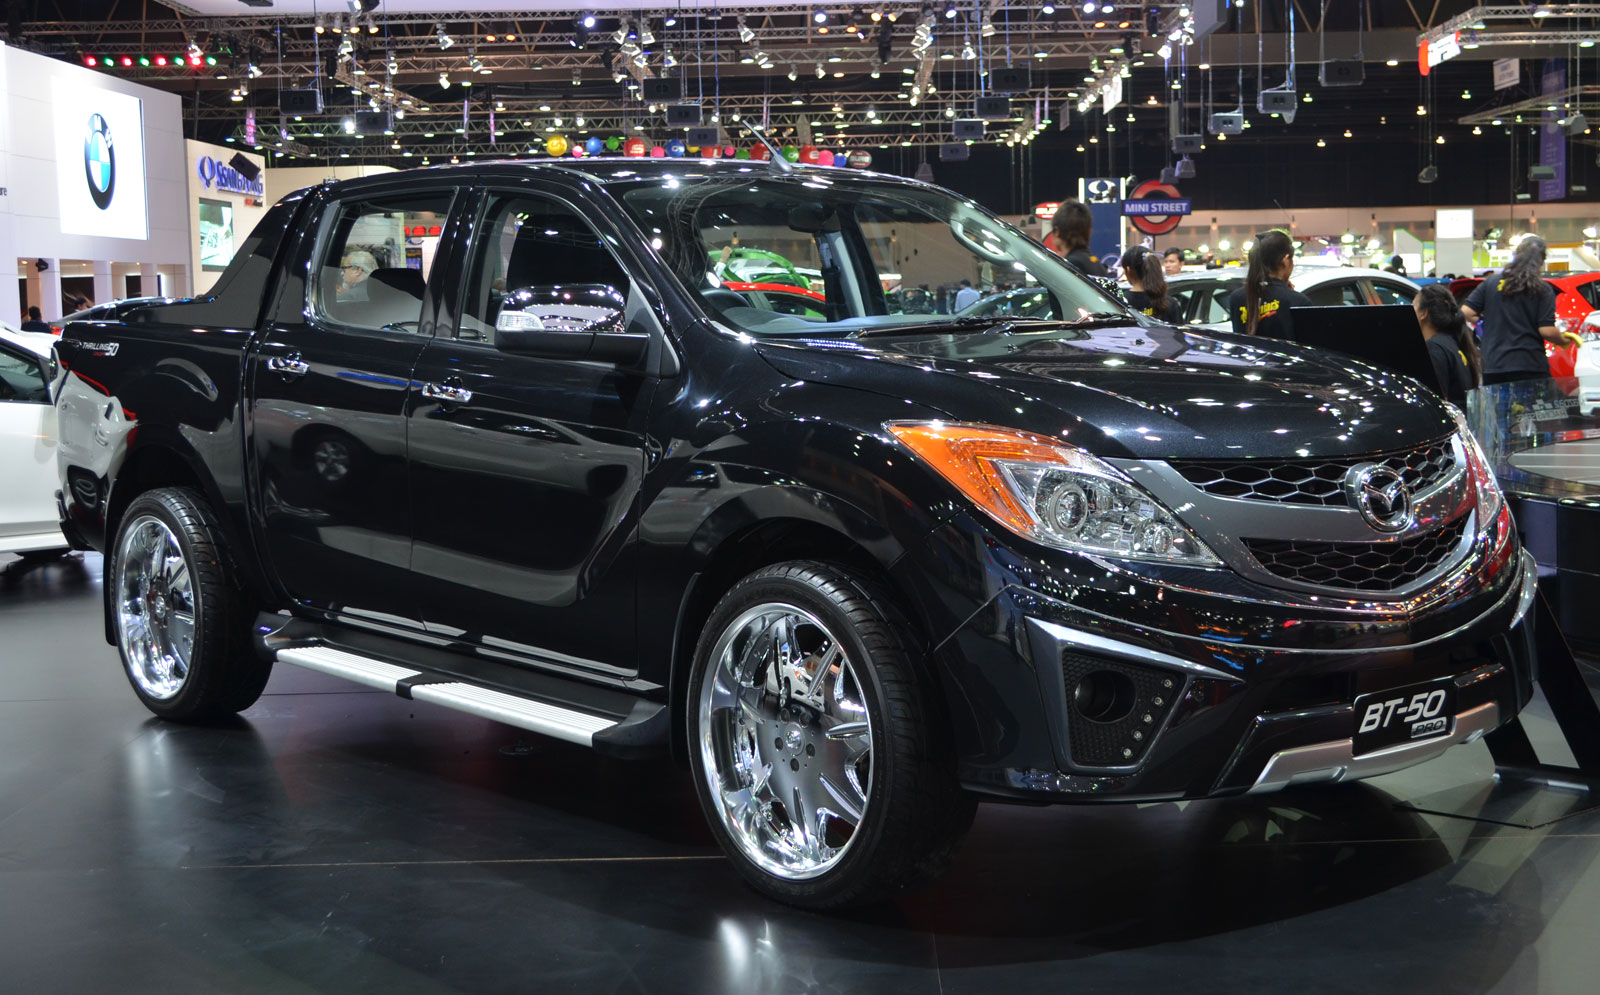 Thai Motor Expo Mazda Bt 50 Thrilling With The Bling